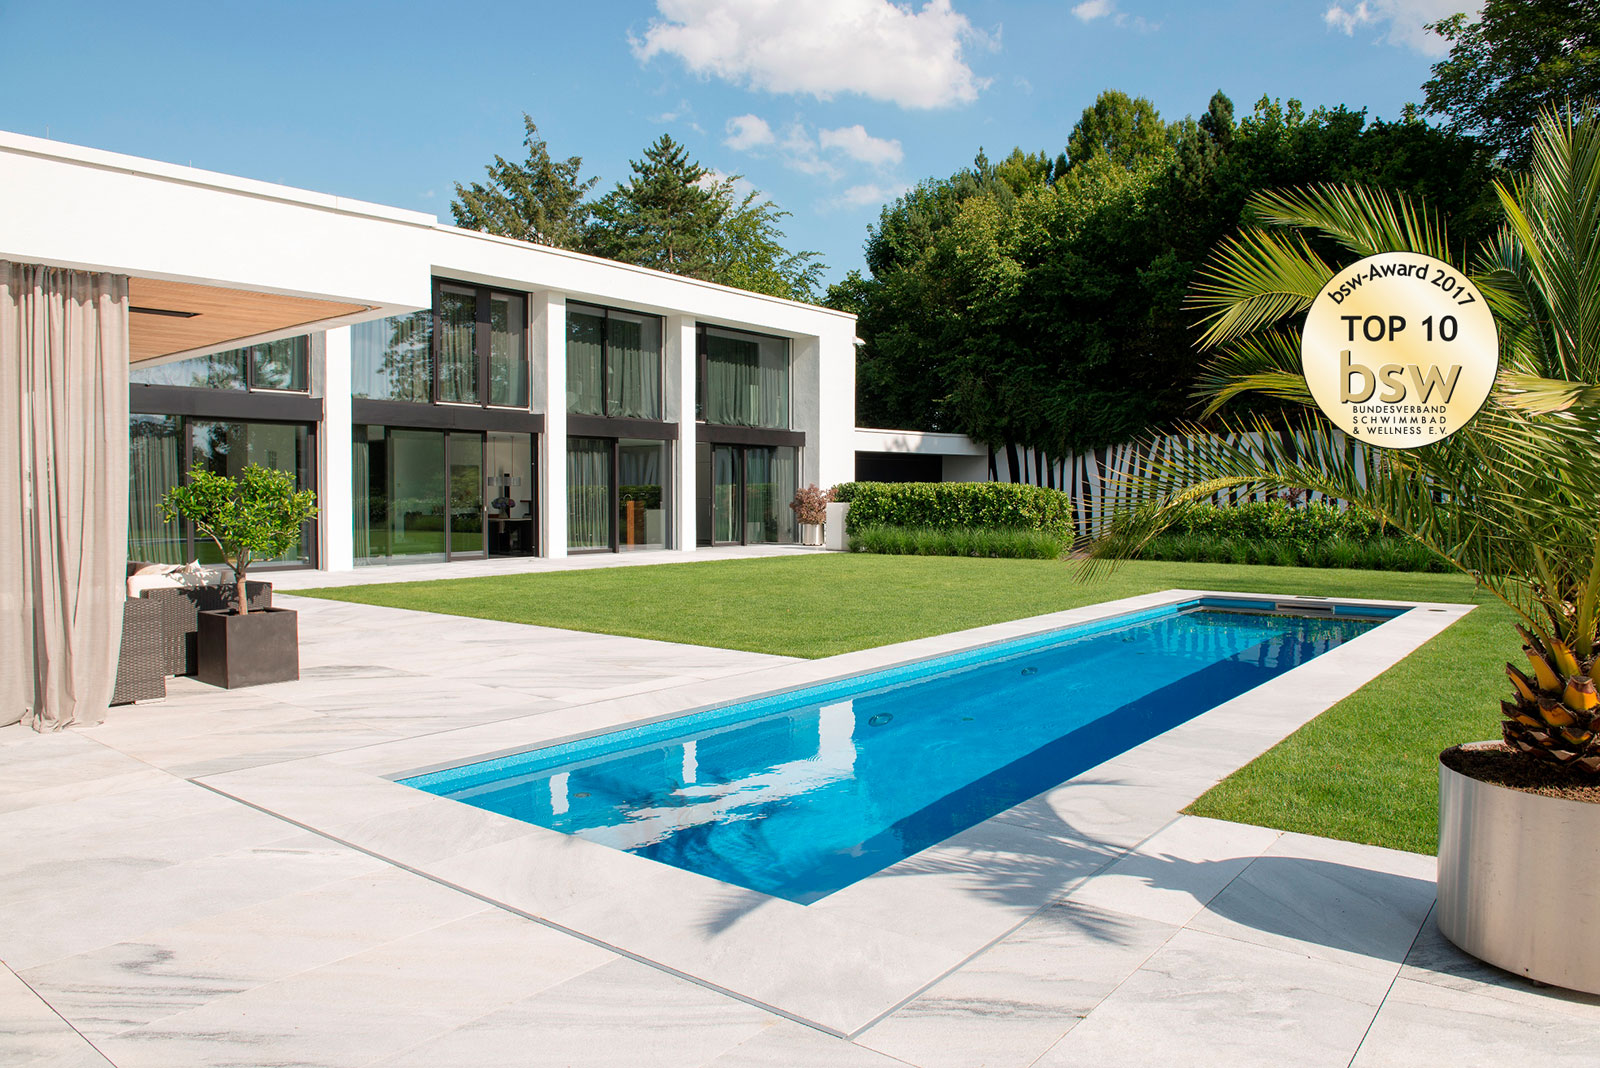 Reps Gmbh / Schwimmbad / Whirlpool / Poolservice